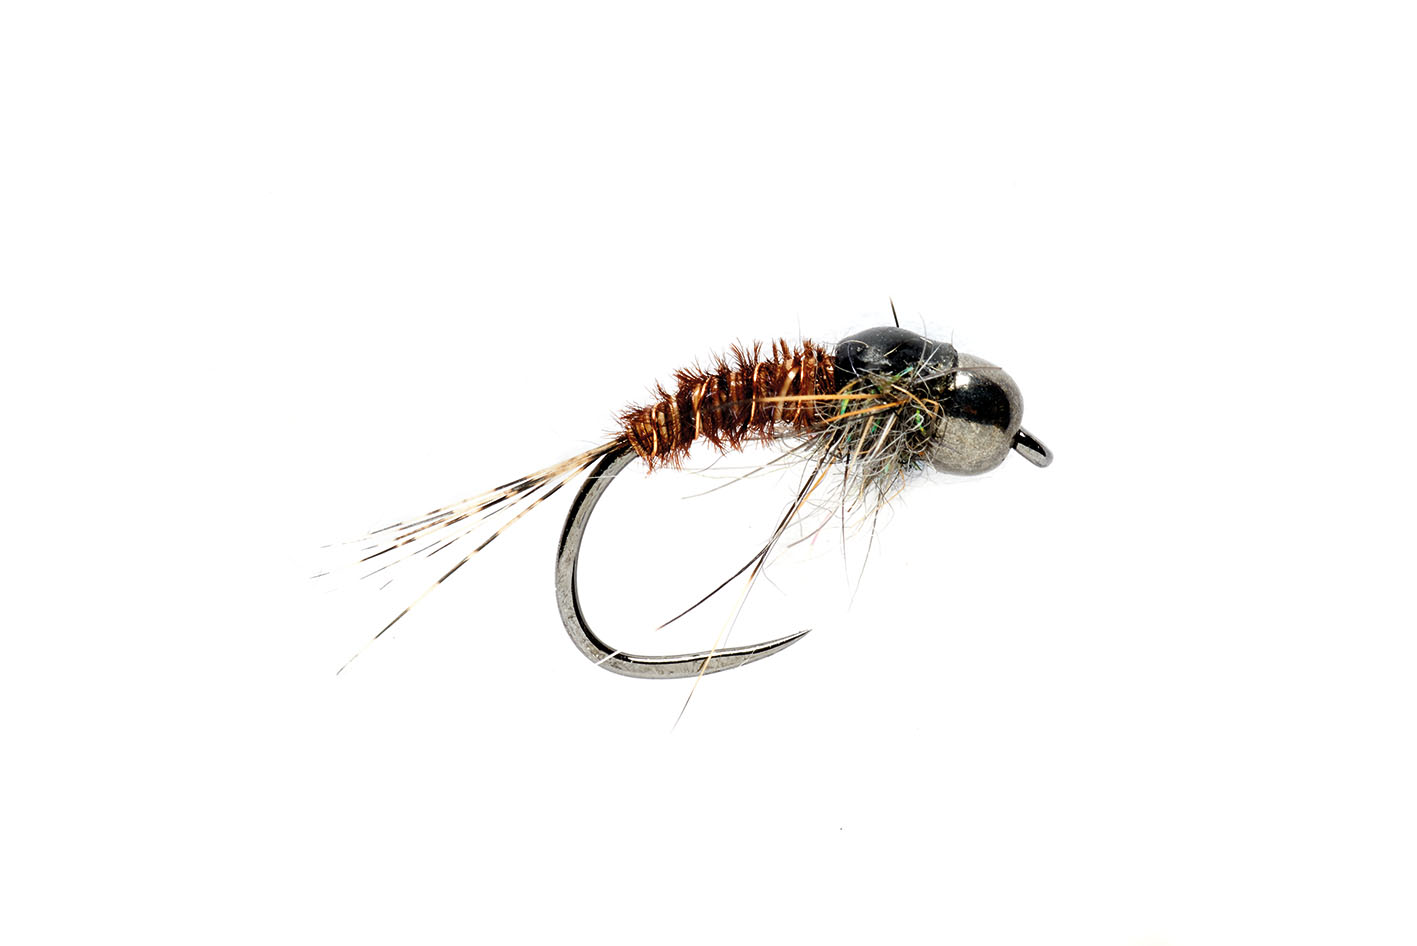 Pheasant Tail Grub (TBH) Barbless